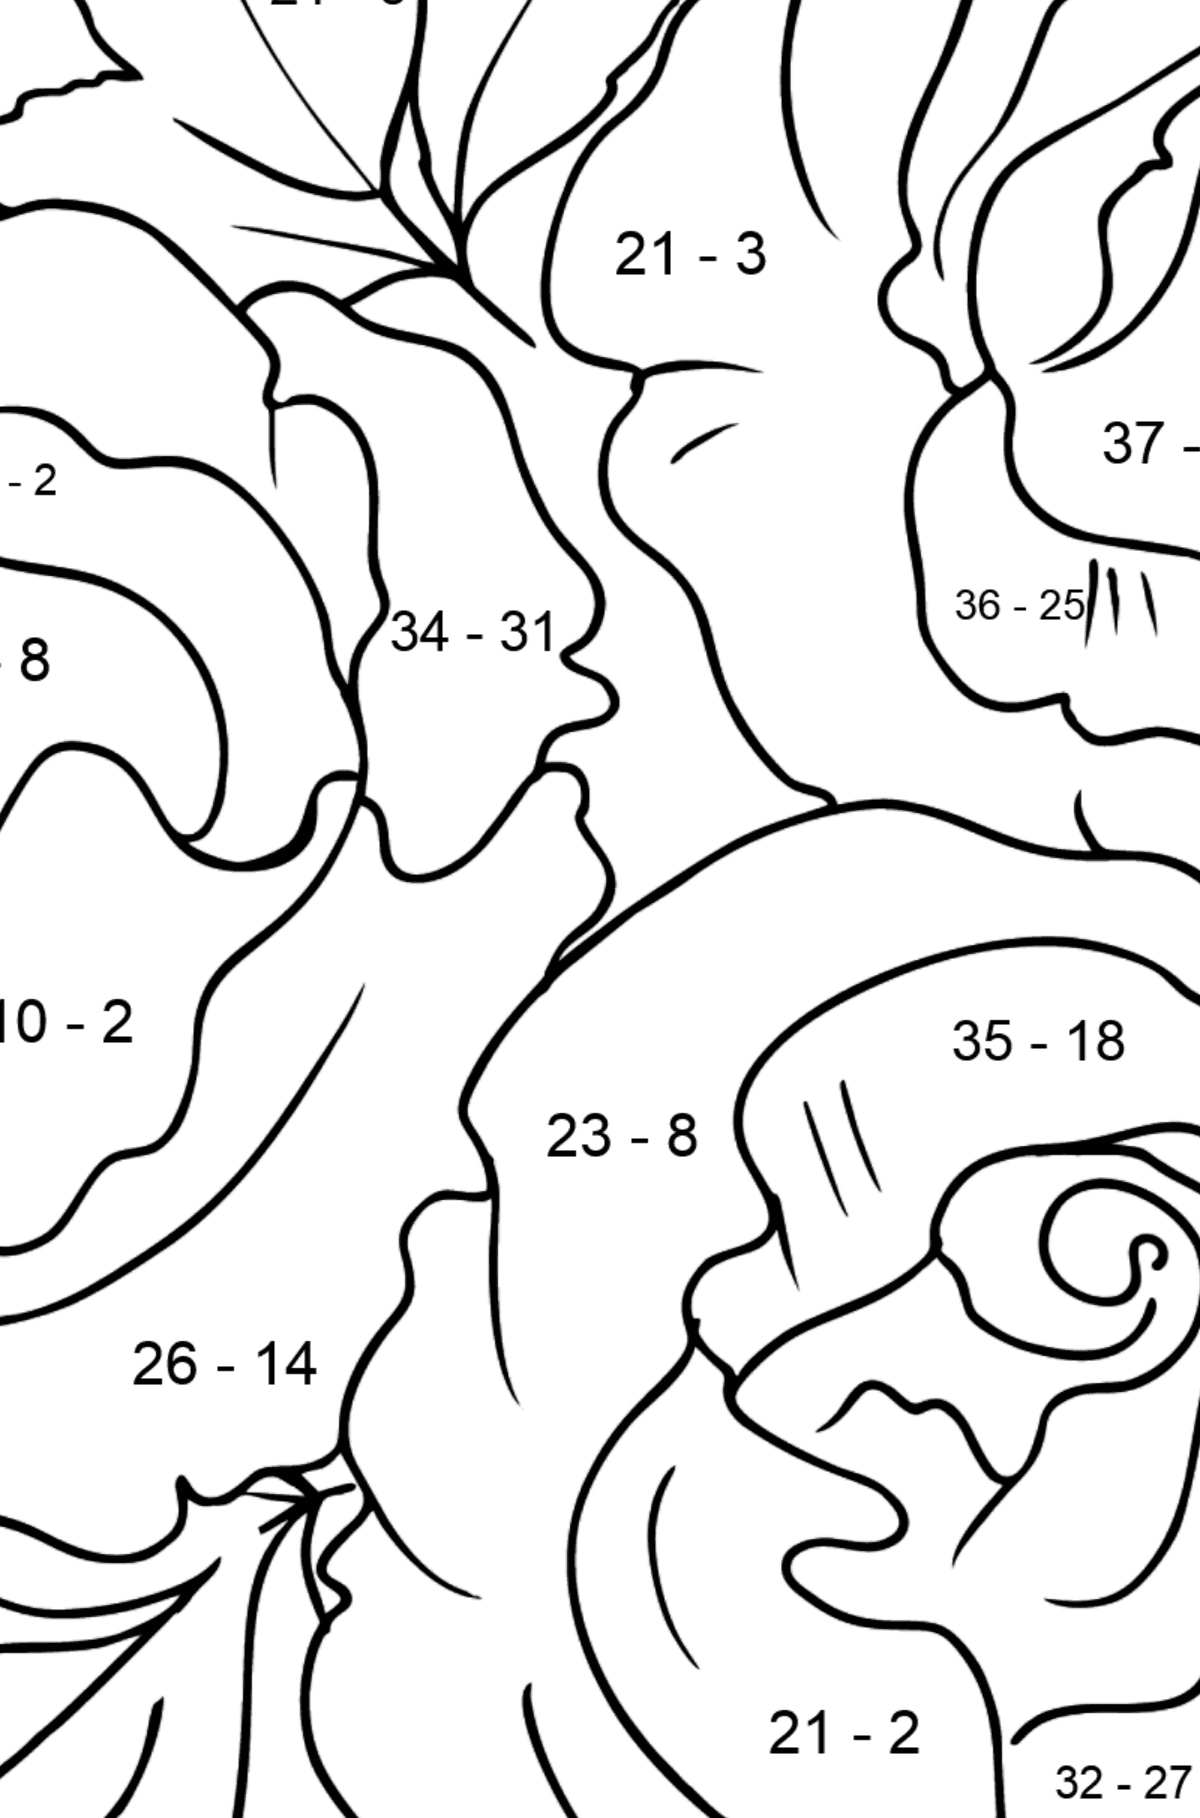 Roses Coloring Page - Math Coloring - Subtraction for Kids